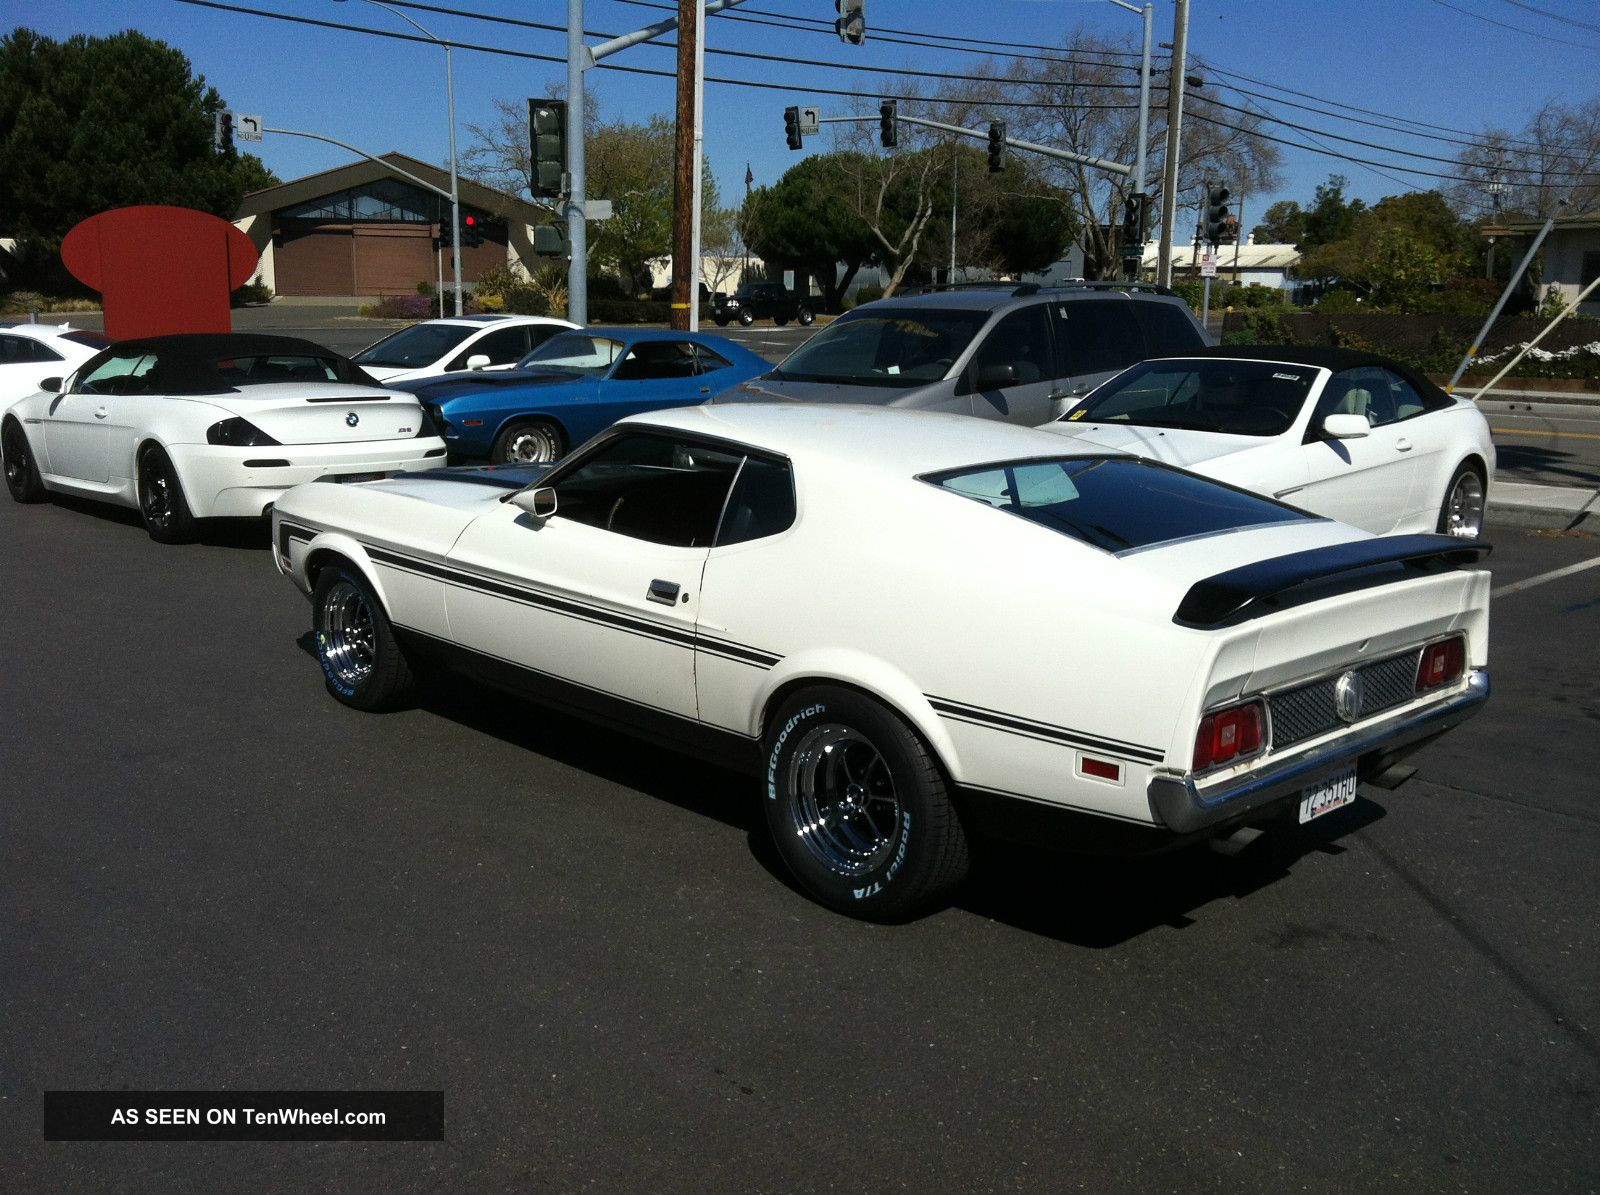 1972 Ford Mustang Mach 1 photo - 3